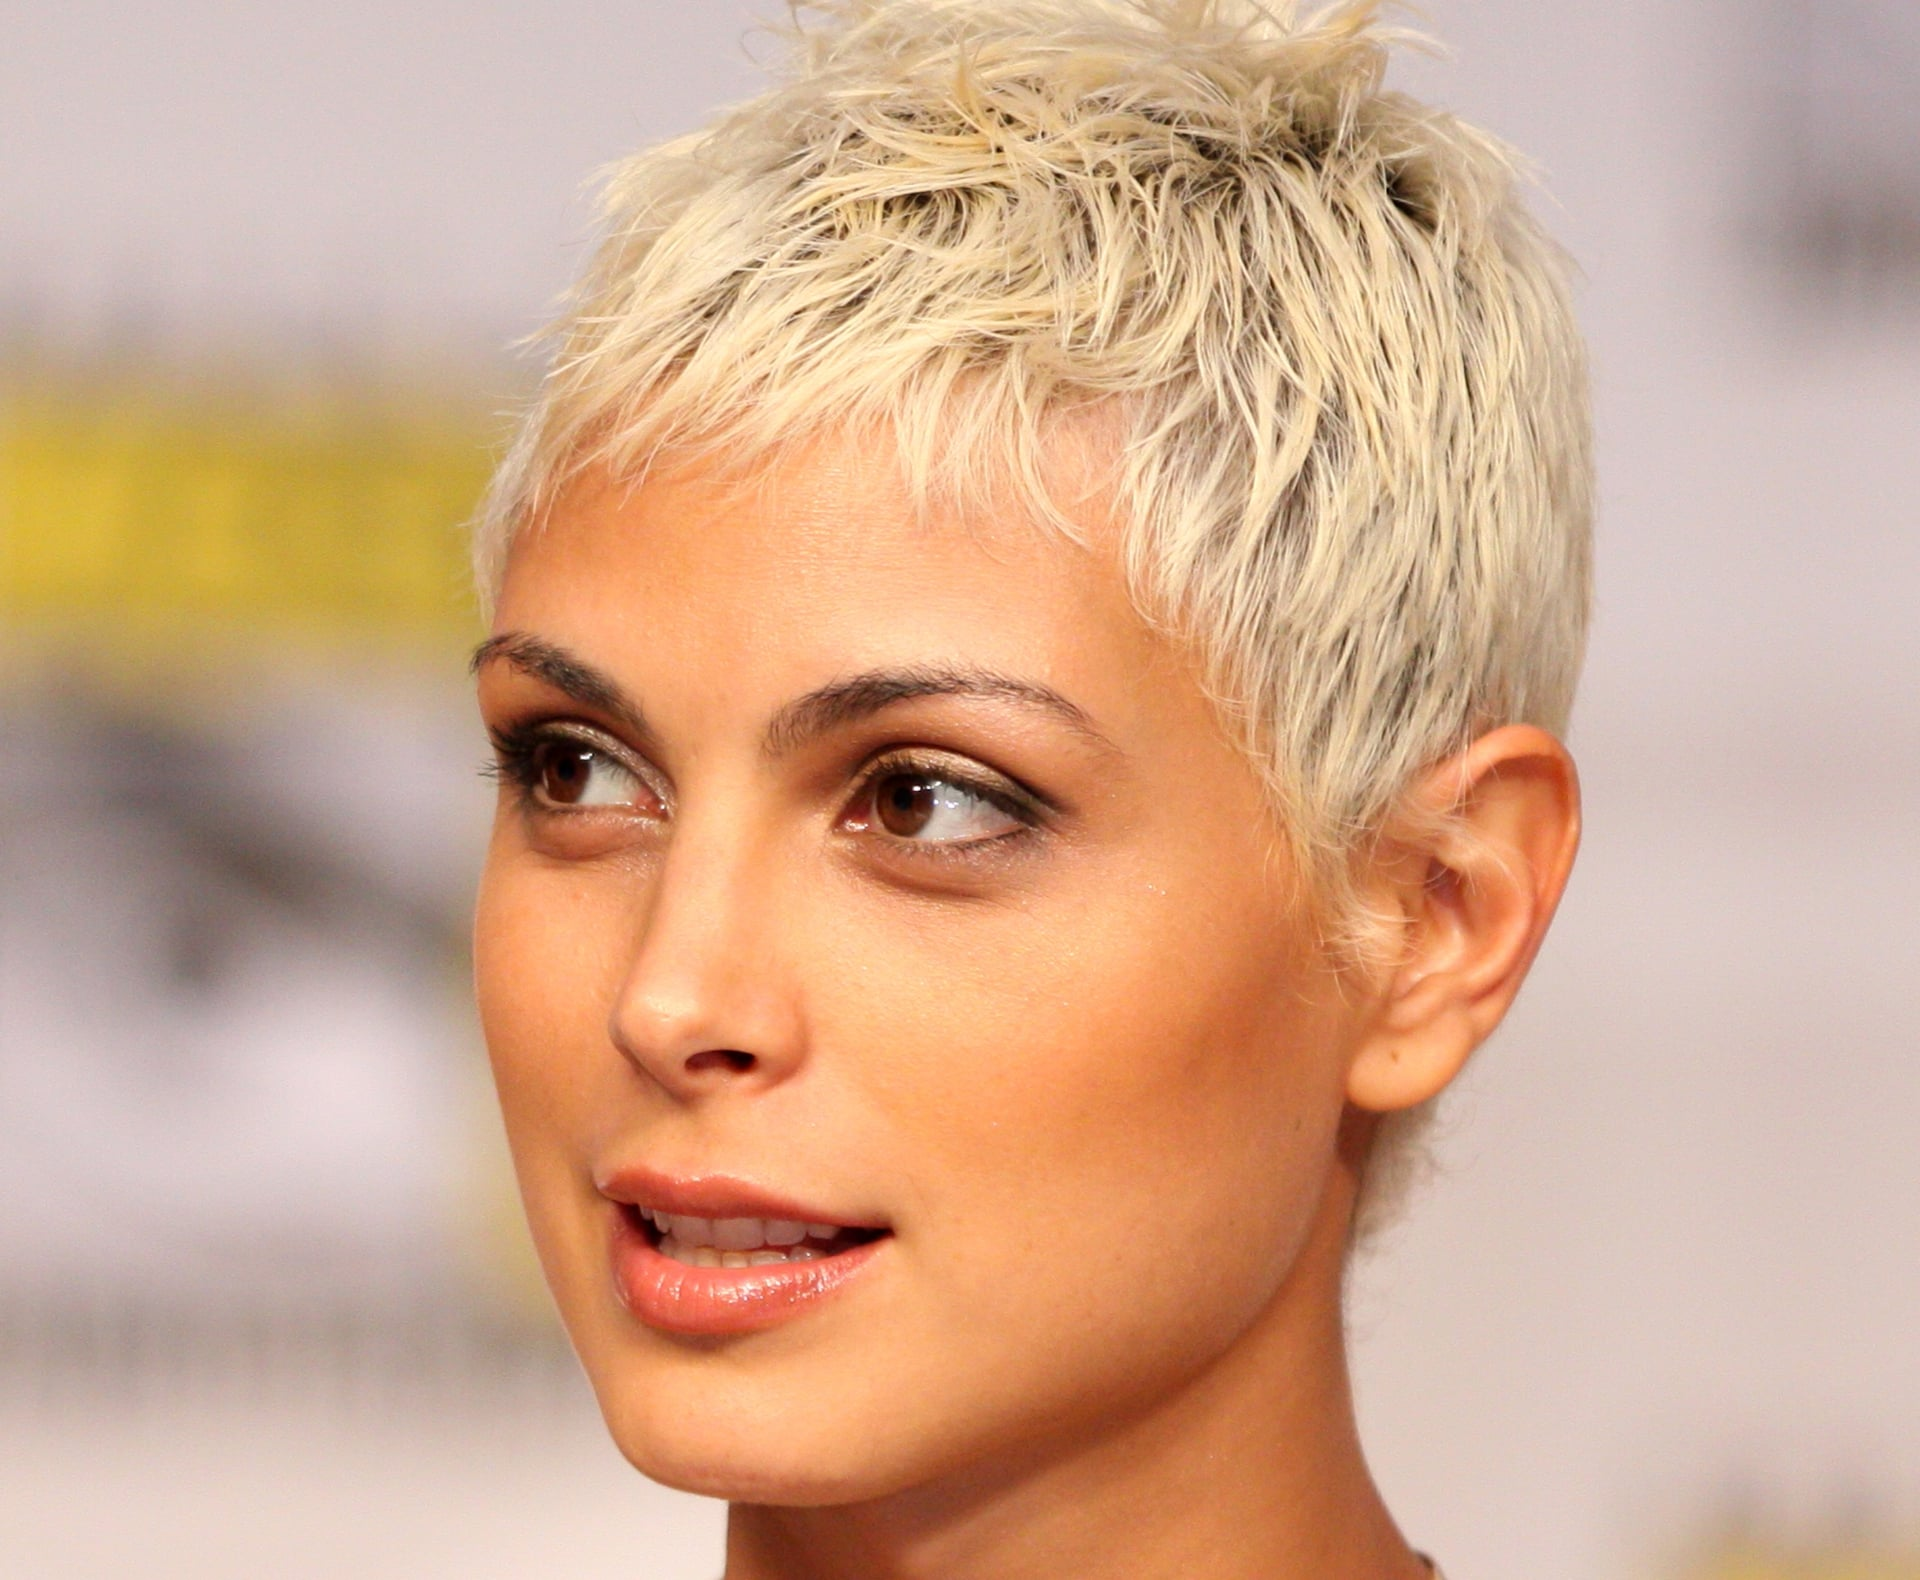 Morena Baccarin Wallpapers High Quality Download